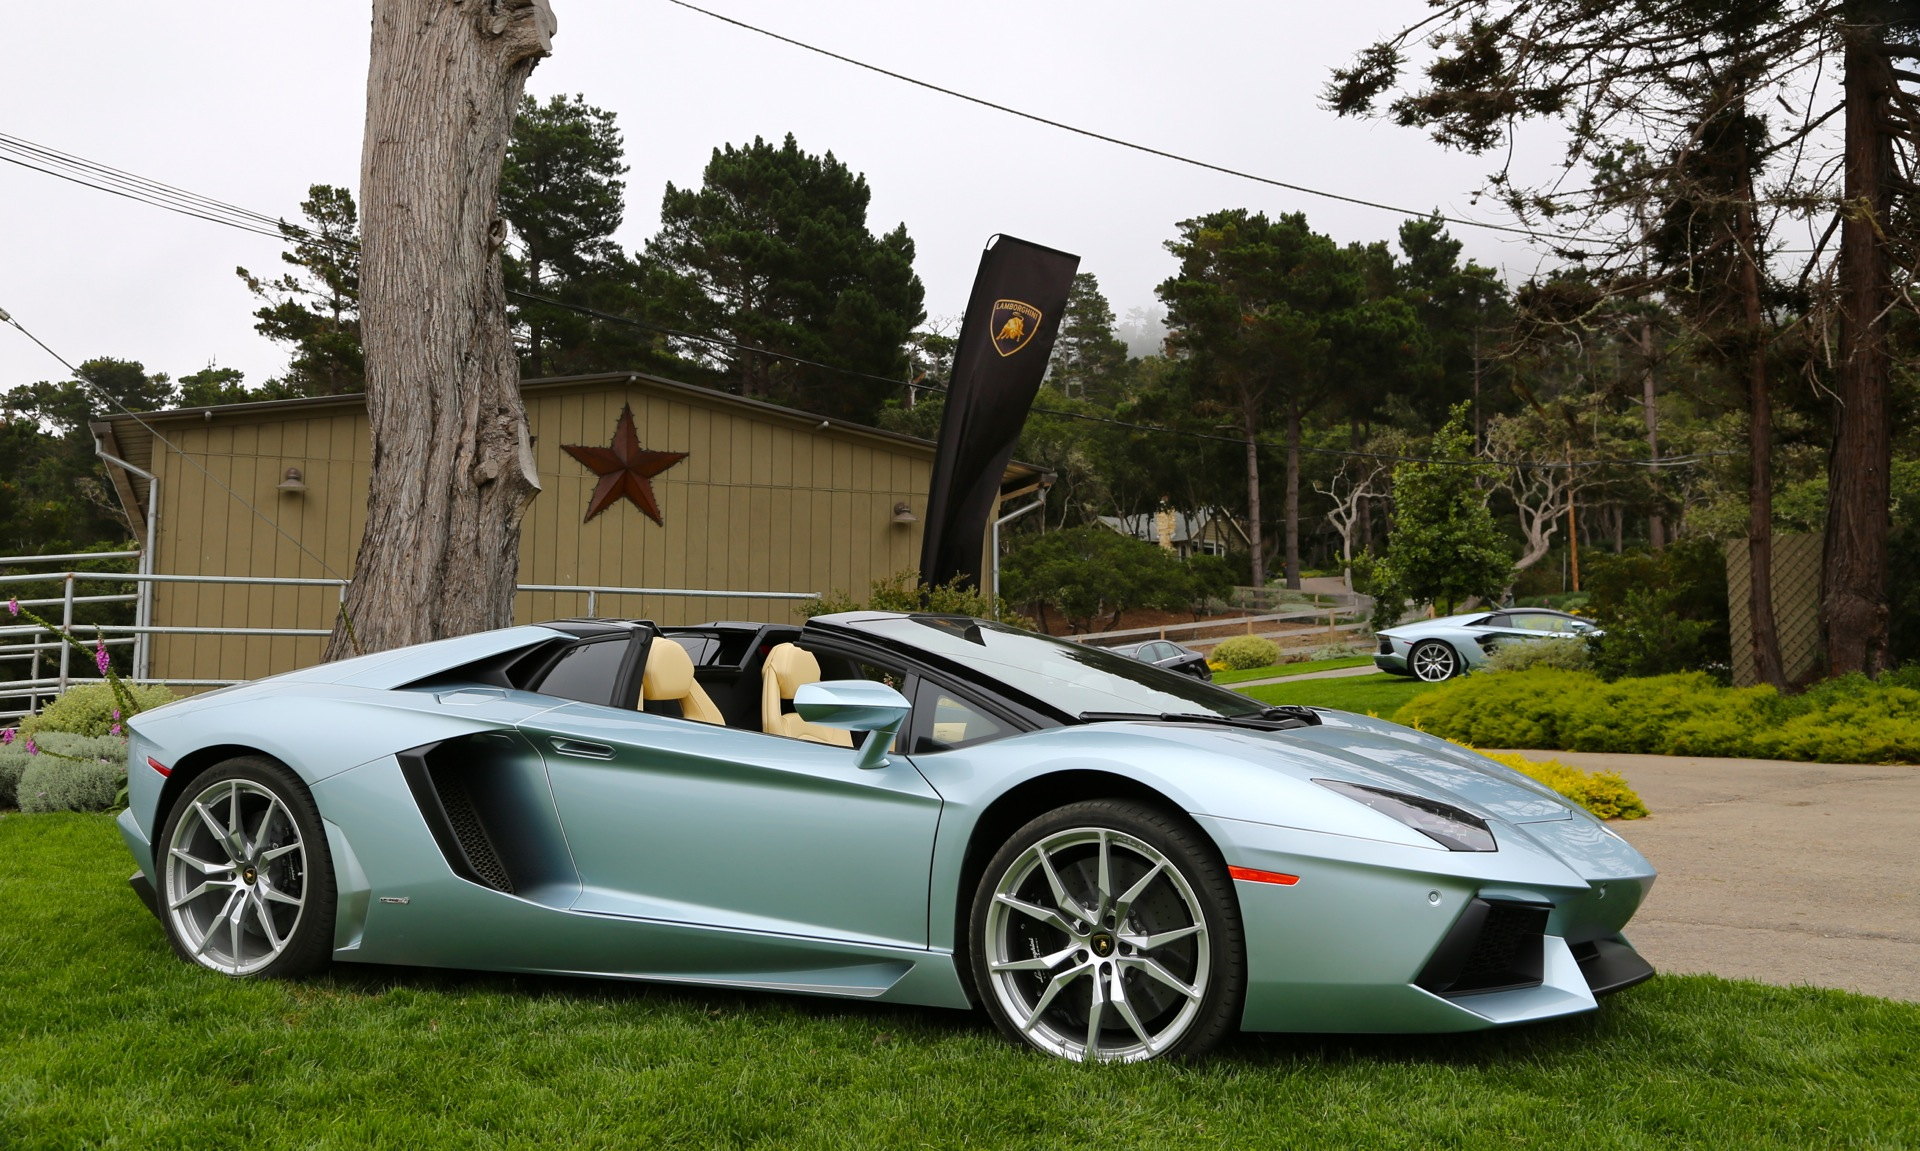 2014 Lamborghini Aventador Review Ratings Specs Prices and